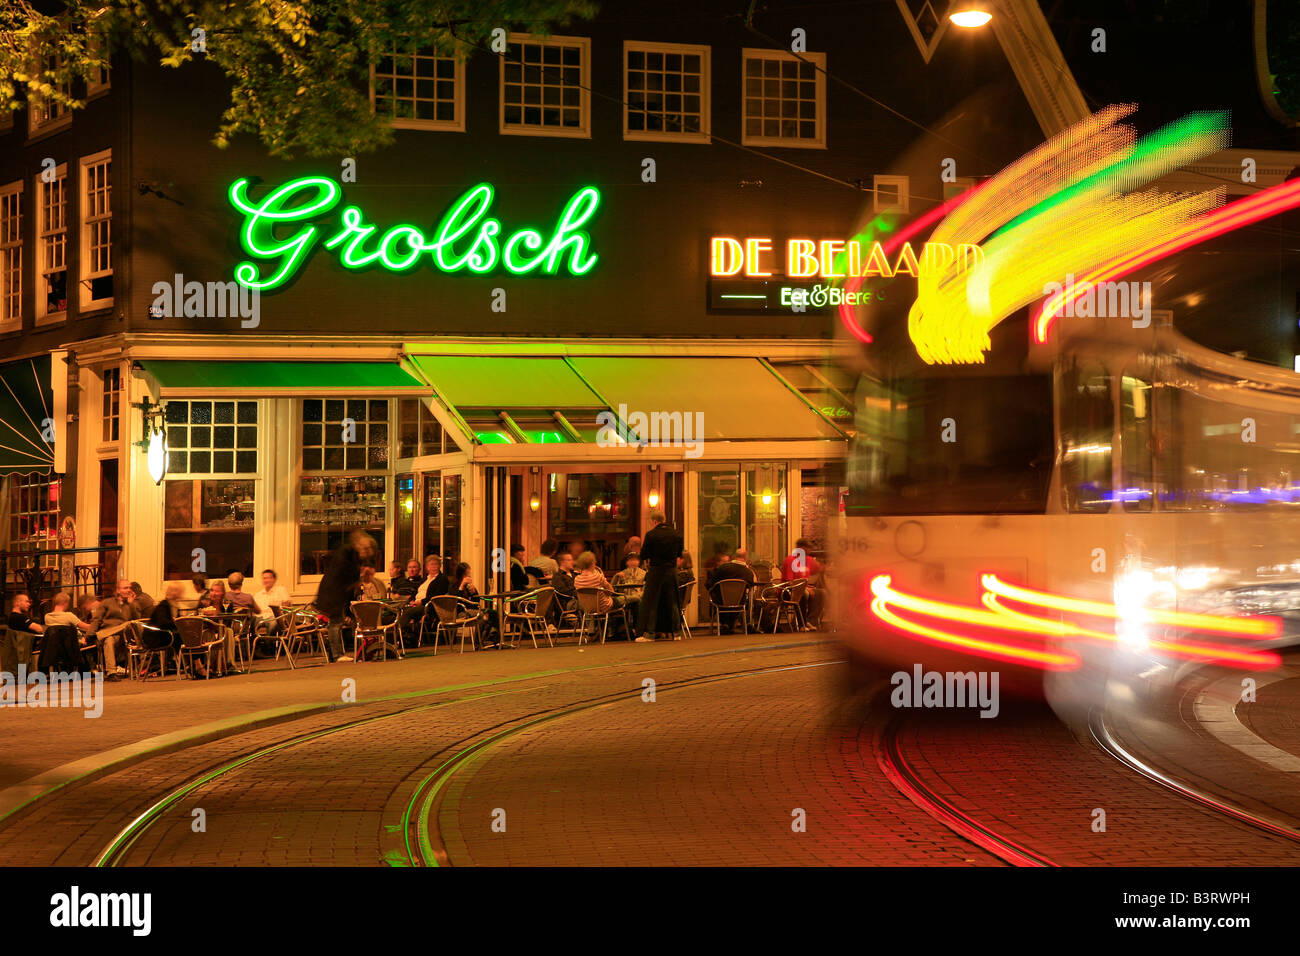 Amsterdam night scene: De Beiaard pub with Grolsch neon sign and moving tram creating traces of colourful lights - Stock Image